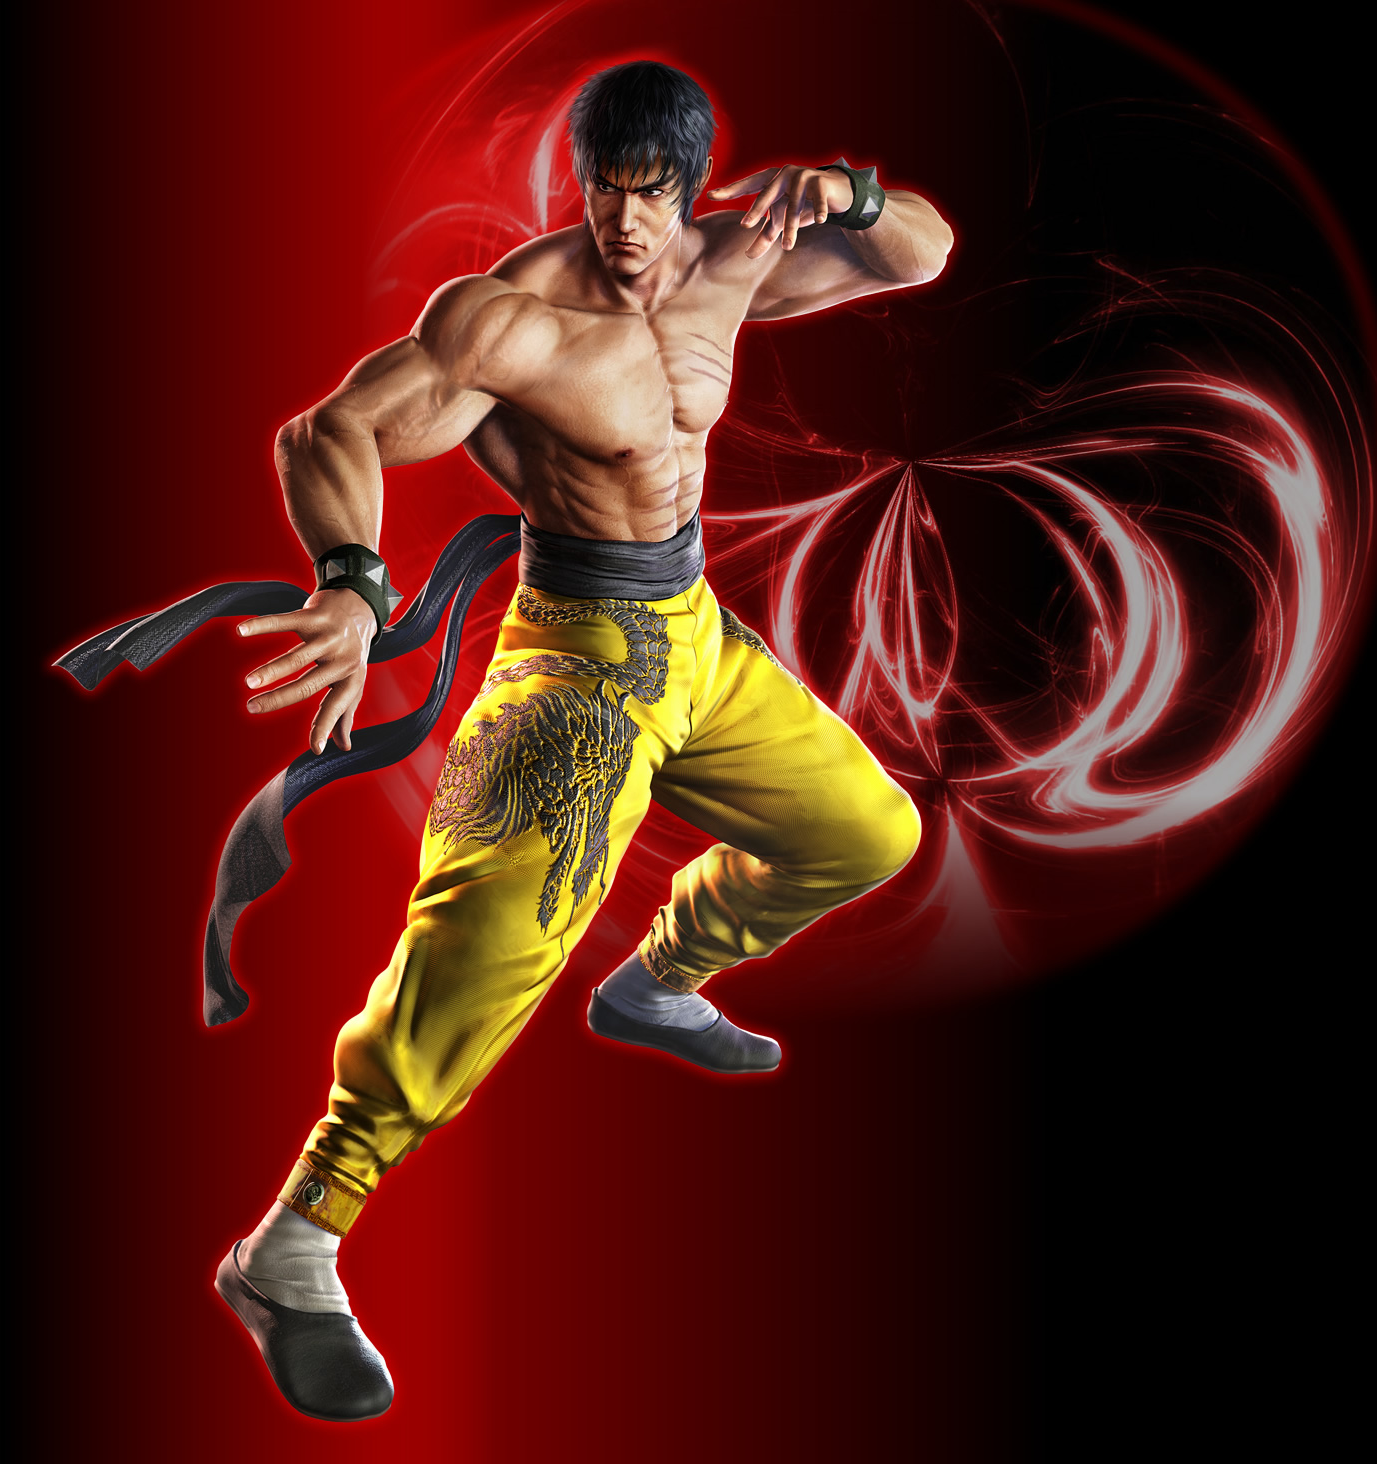 Law-tekken7-render-official